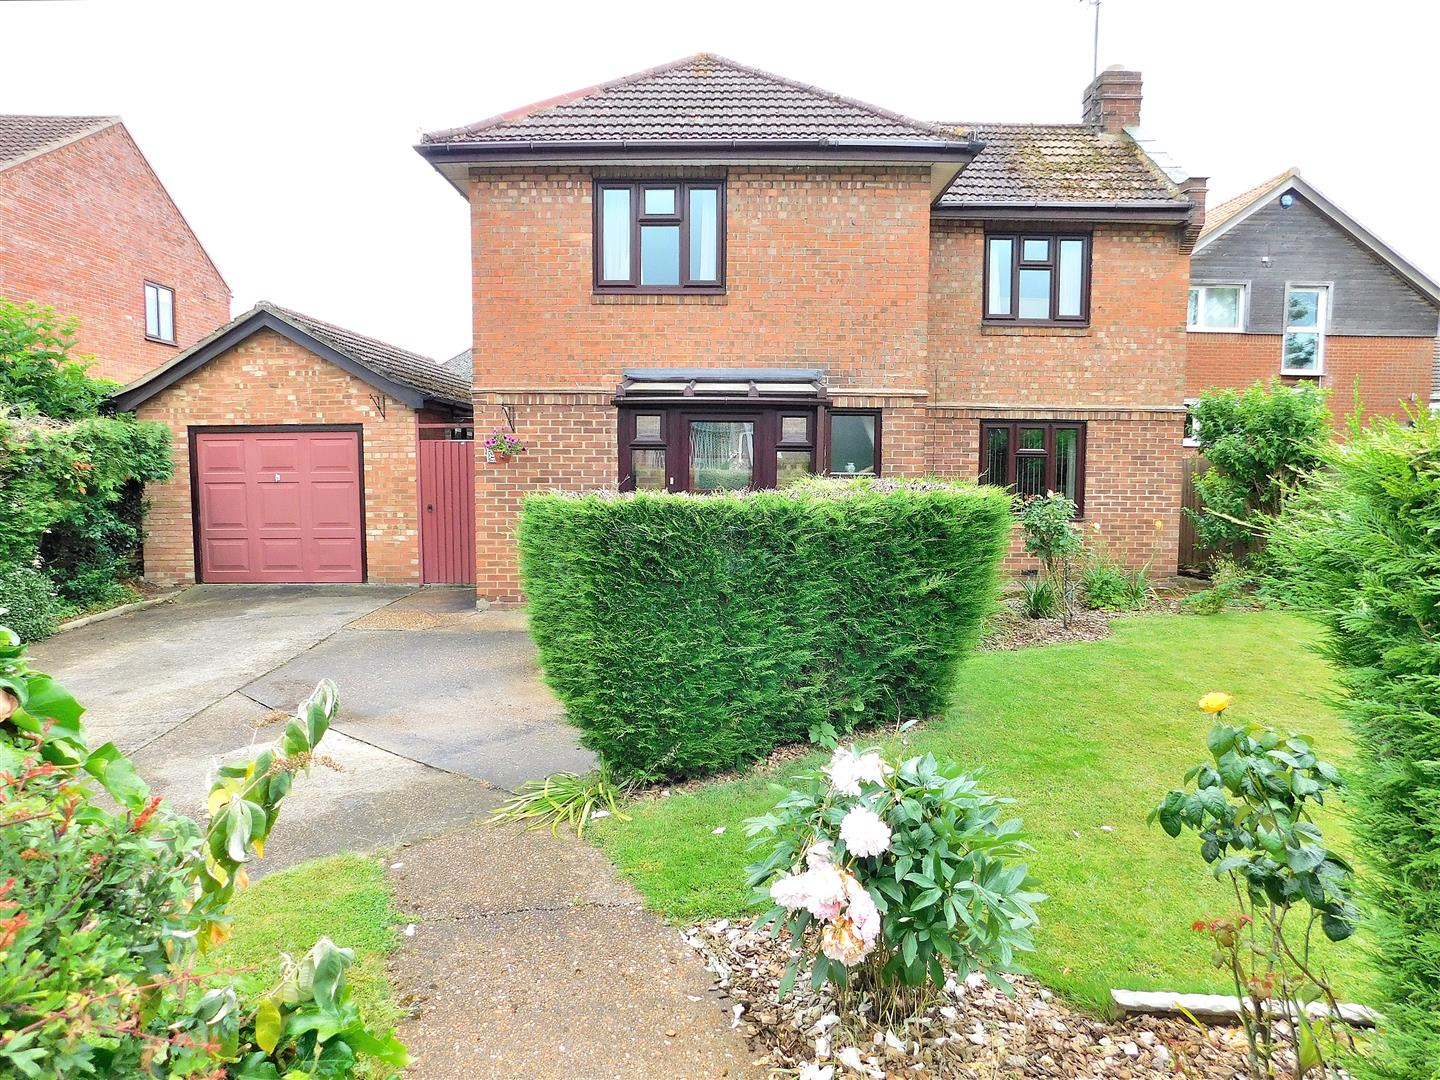 3 bed detached house for sale in Foxs Lane, King's Lynn  - Property Image 1